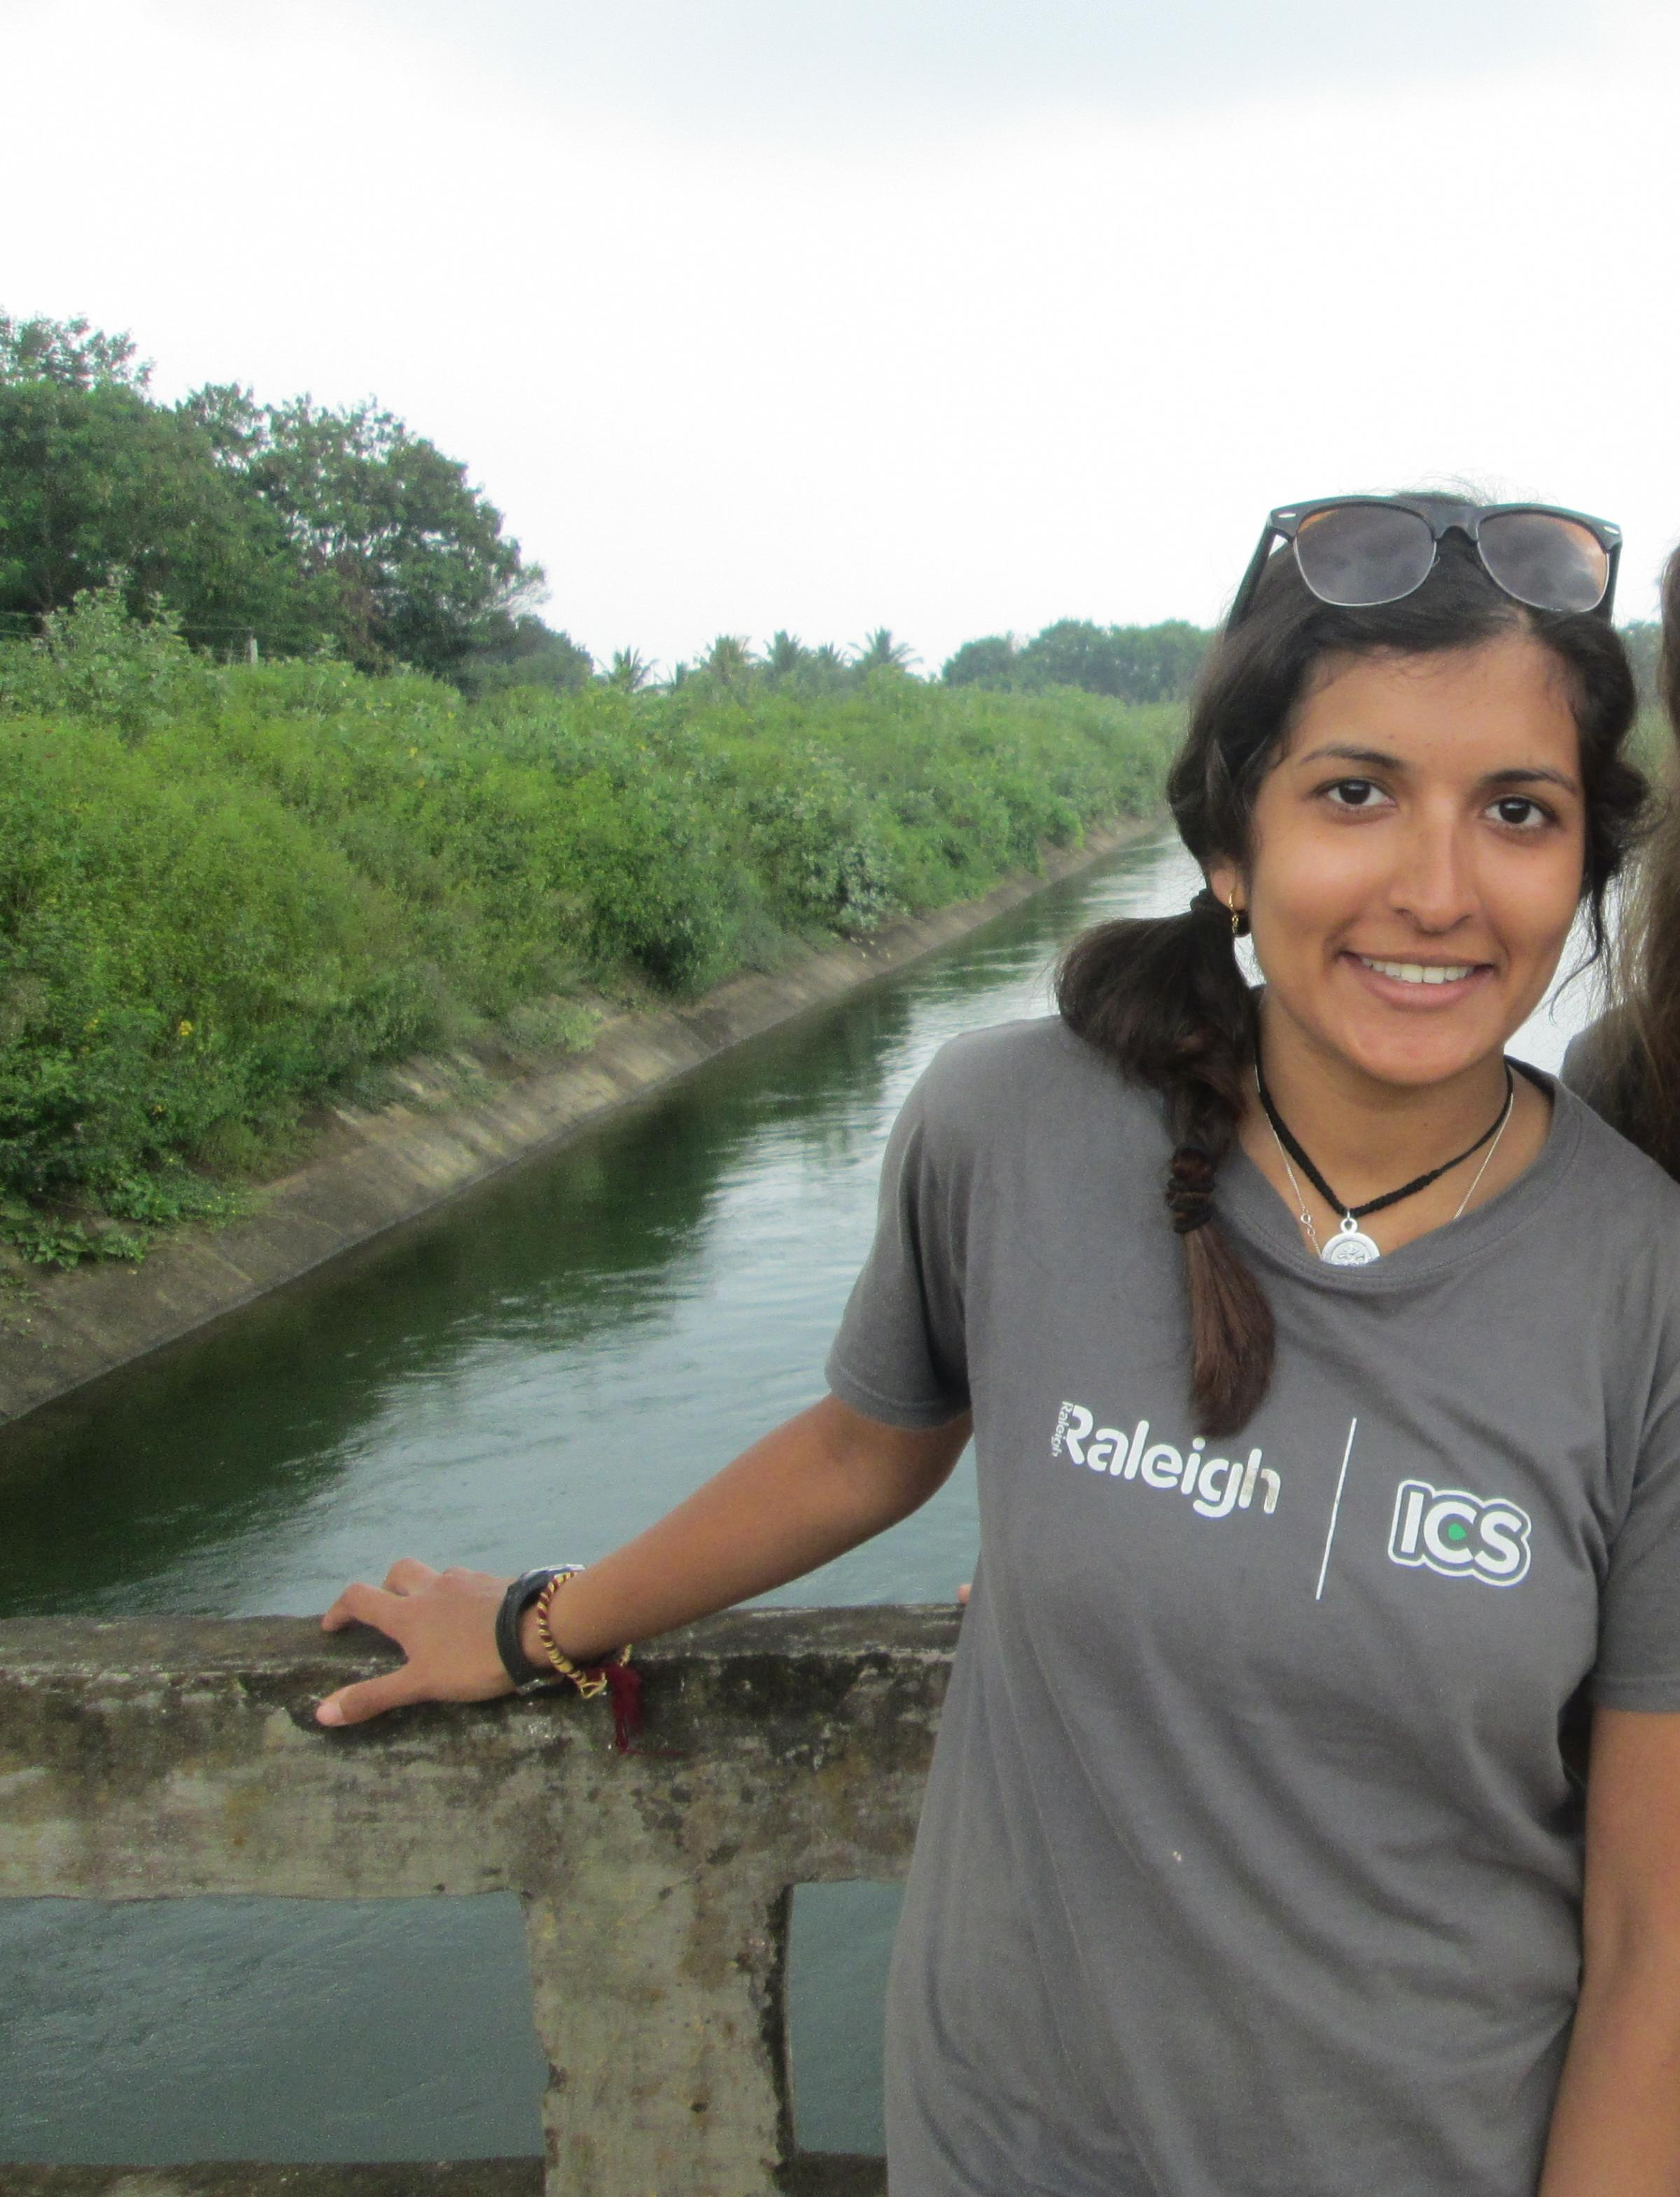 Bhavisha Parmar during her trip in India